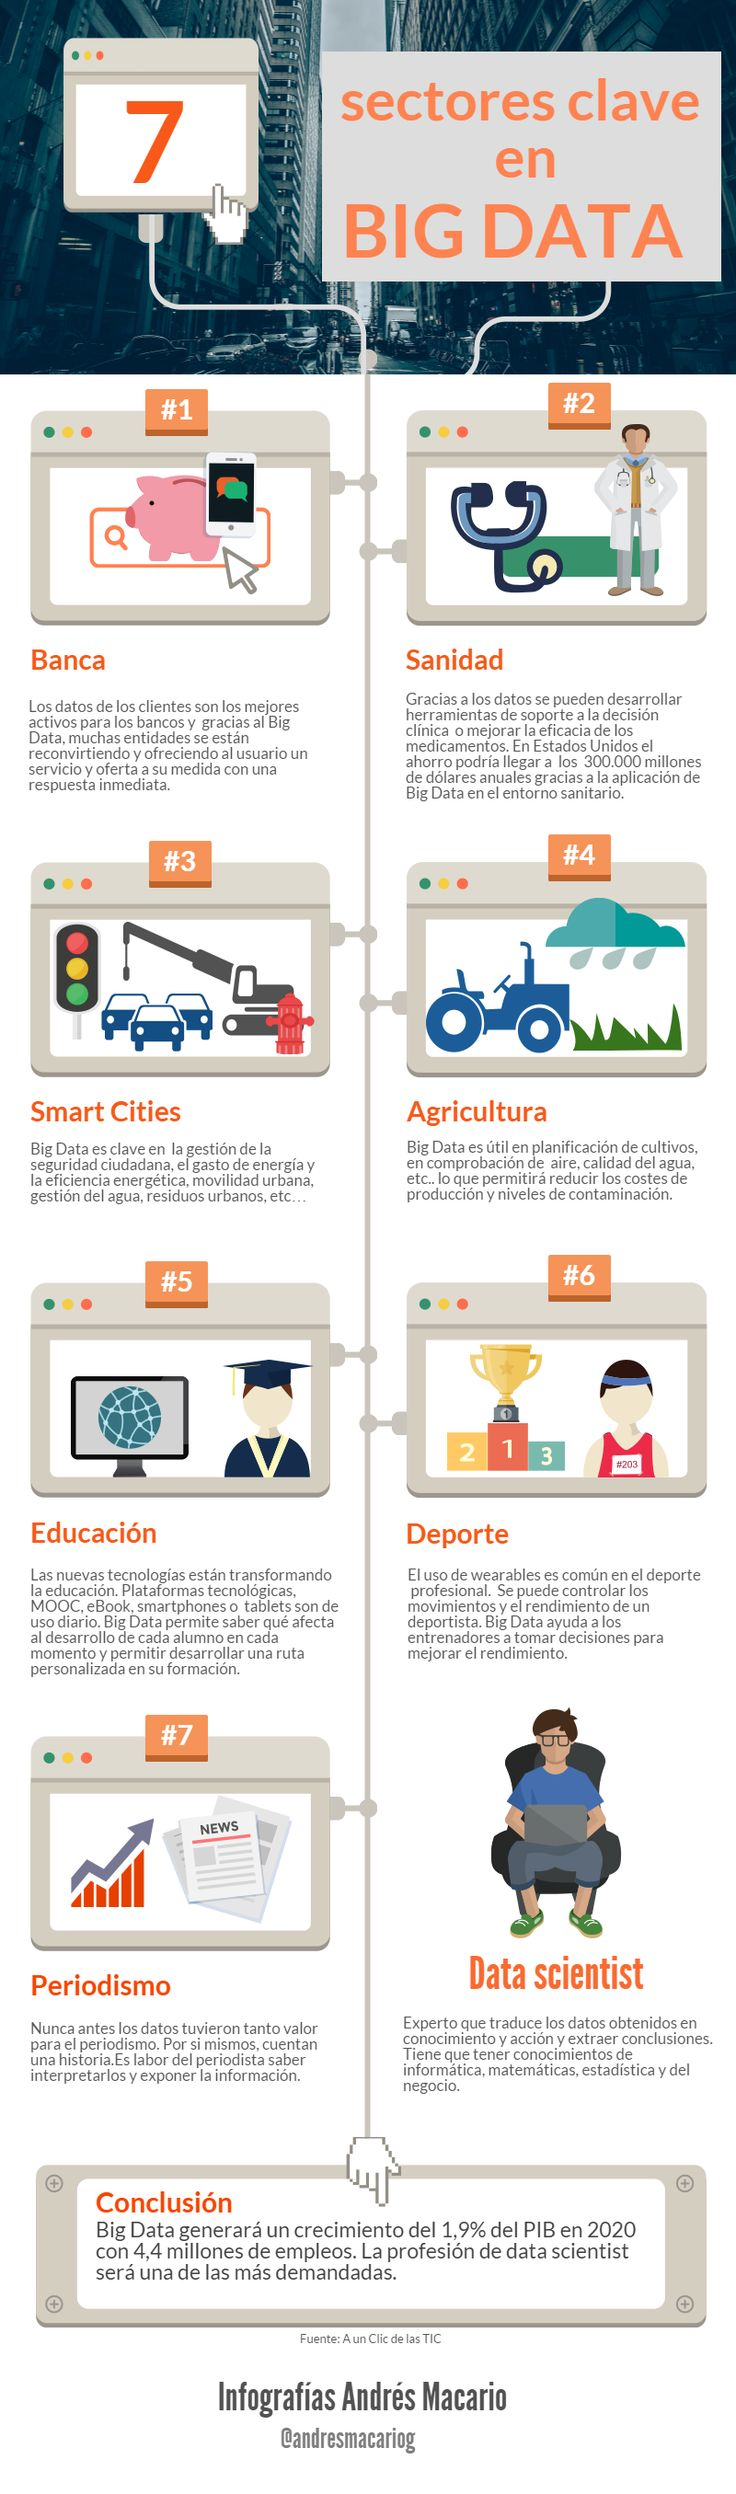 7 sectores clave en Big Data #infografia #infographic